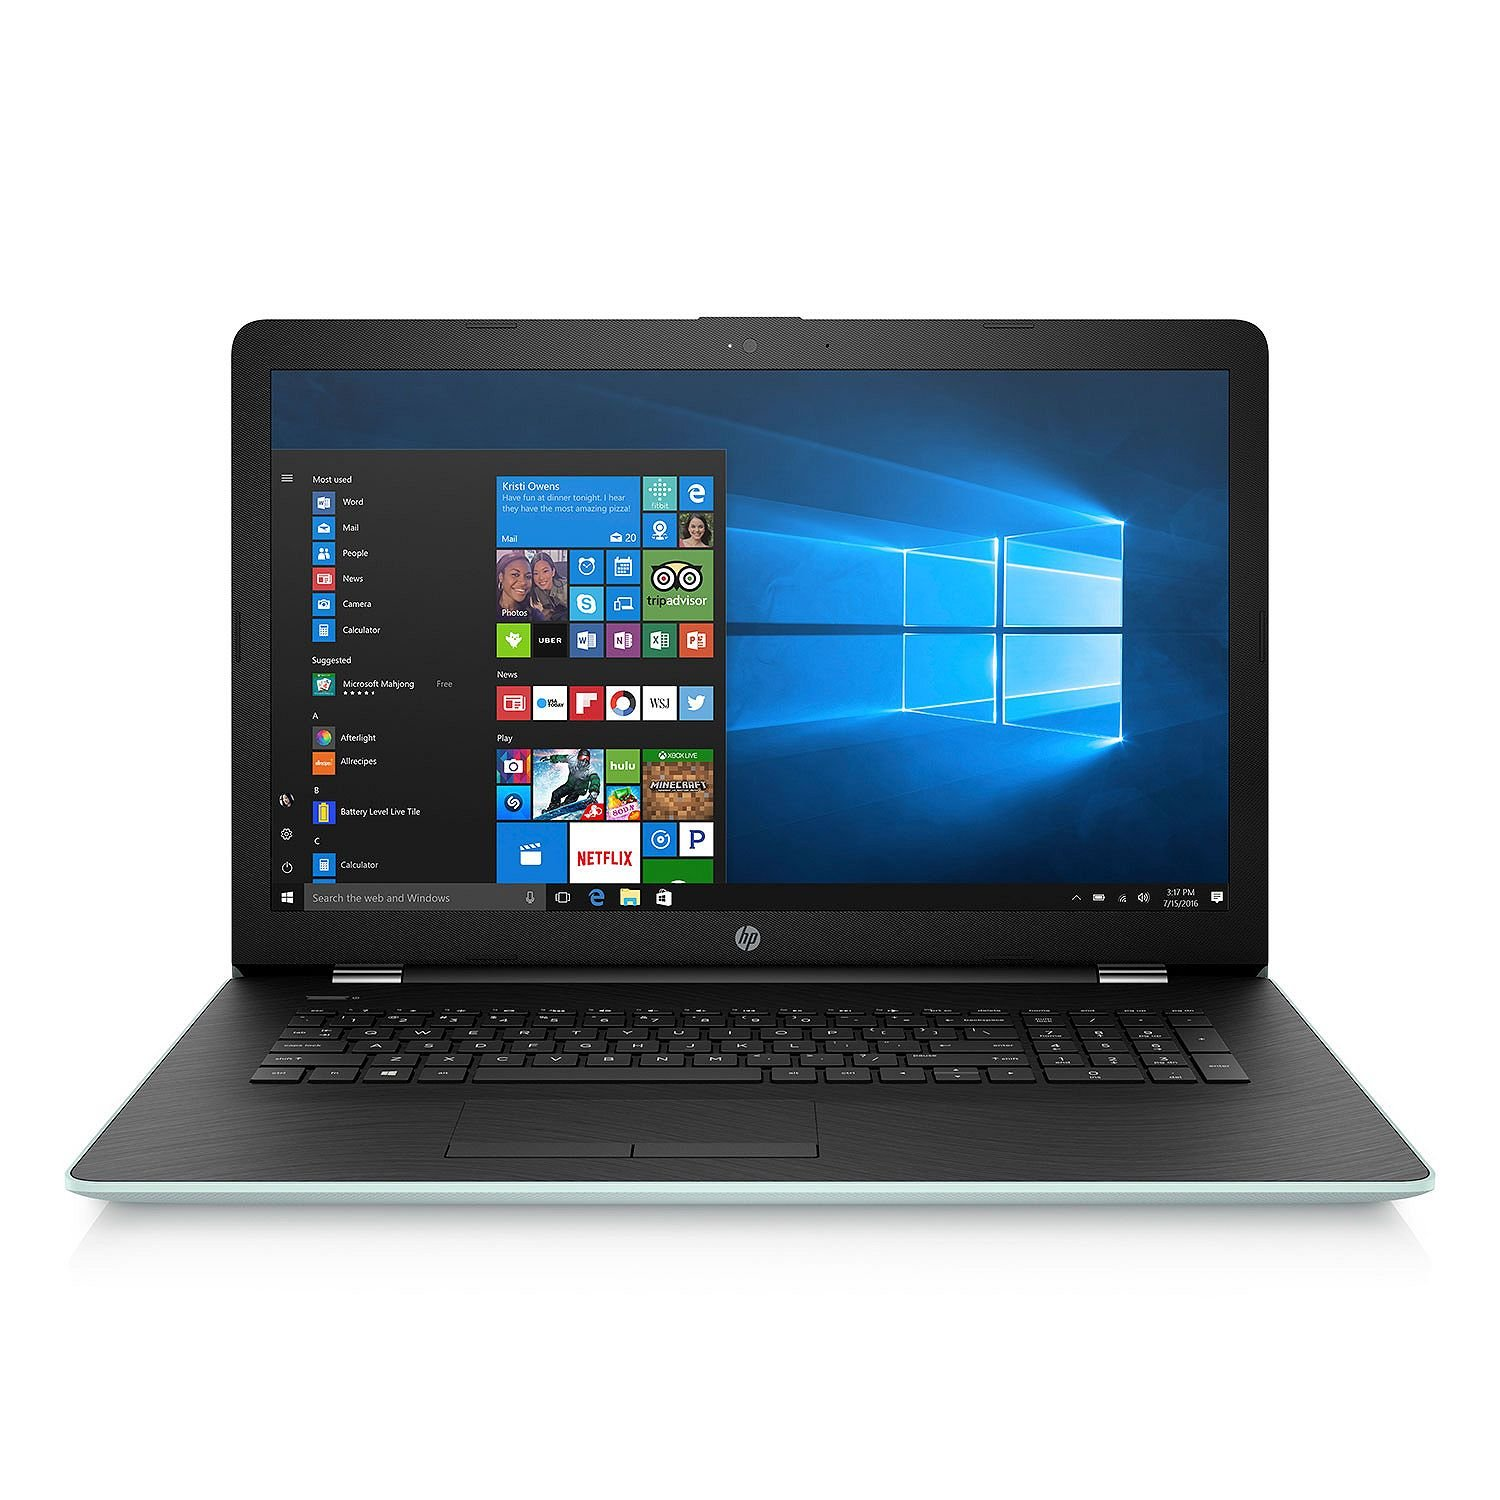 HP 17.3'' HD+ Notebook (2018 New), Intel Core i3-7100U Processor 2.4 GHz, 8GB Memory, 2TB Hard Drive, Optical Drive, HD Webcam, Backlit Keyboard, Windows 10 Home, Pale Mint